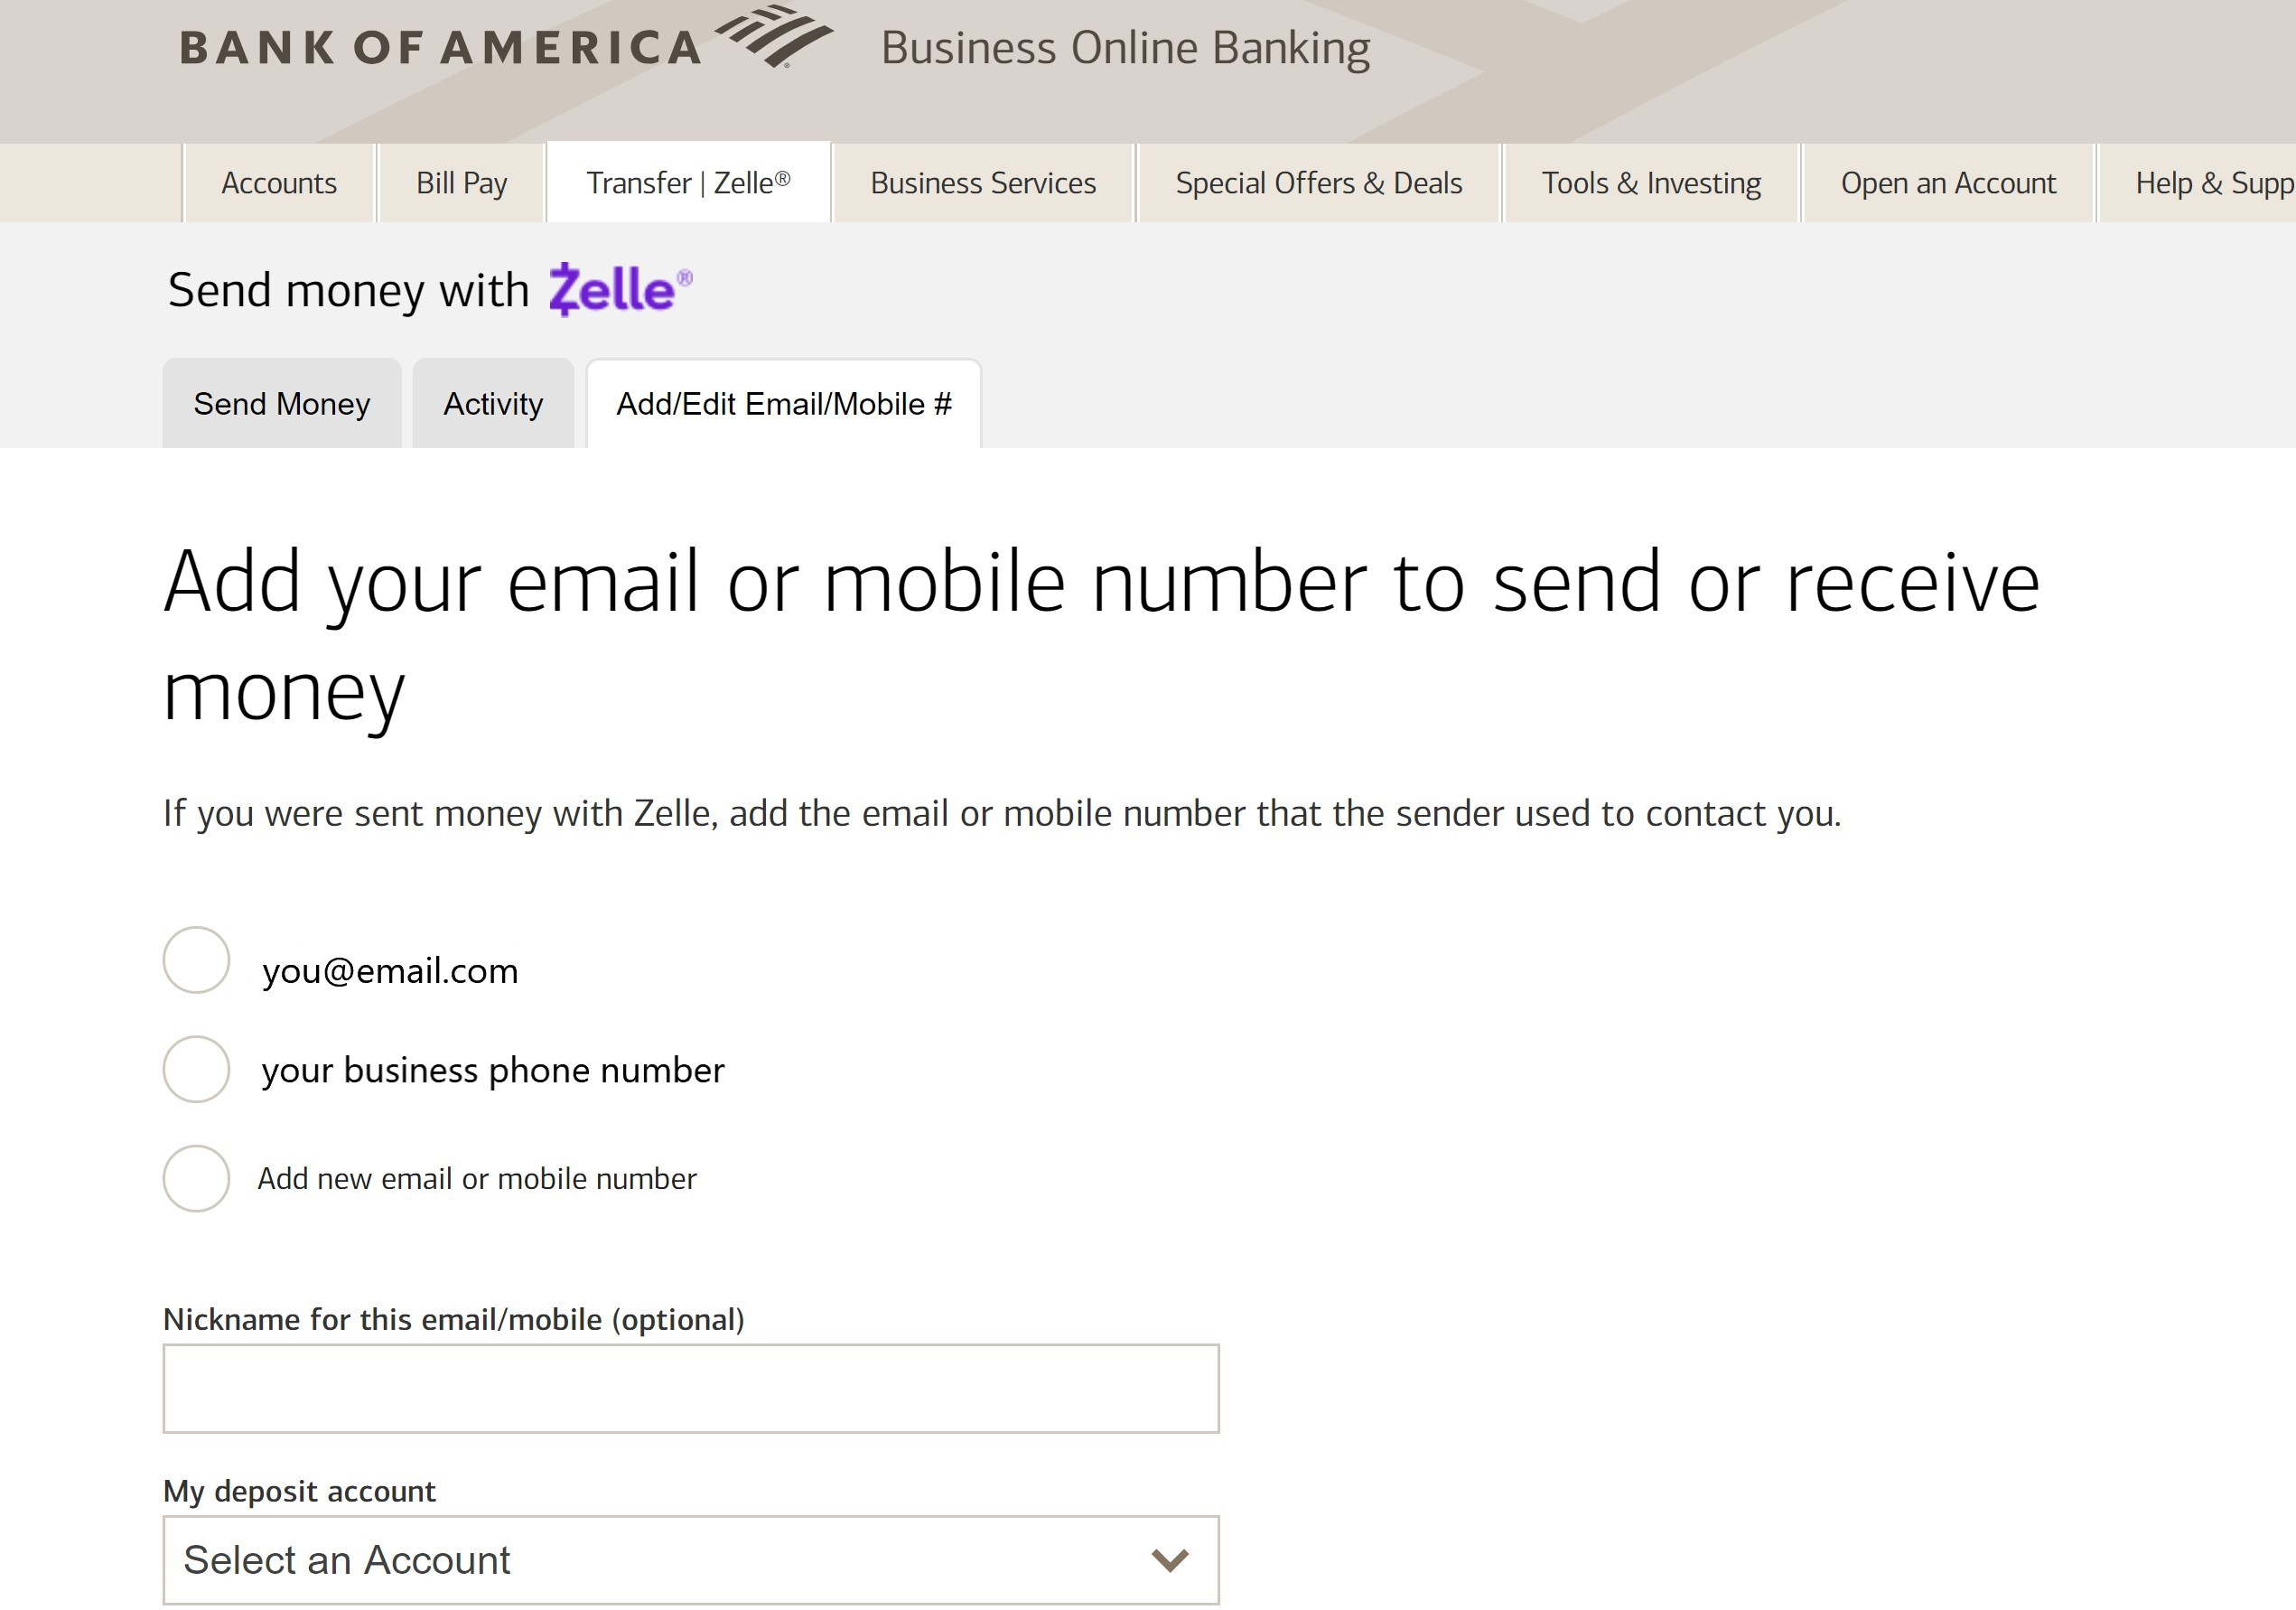 Sample Bank of America Zelle Signup Page